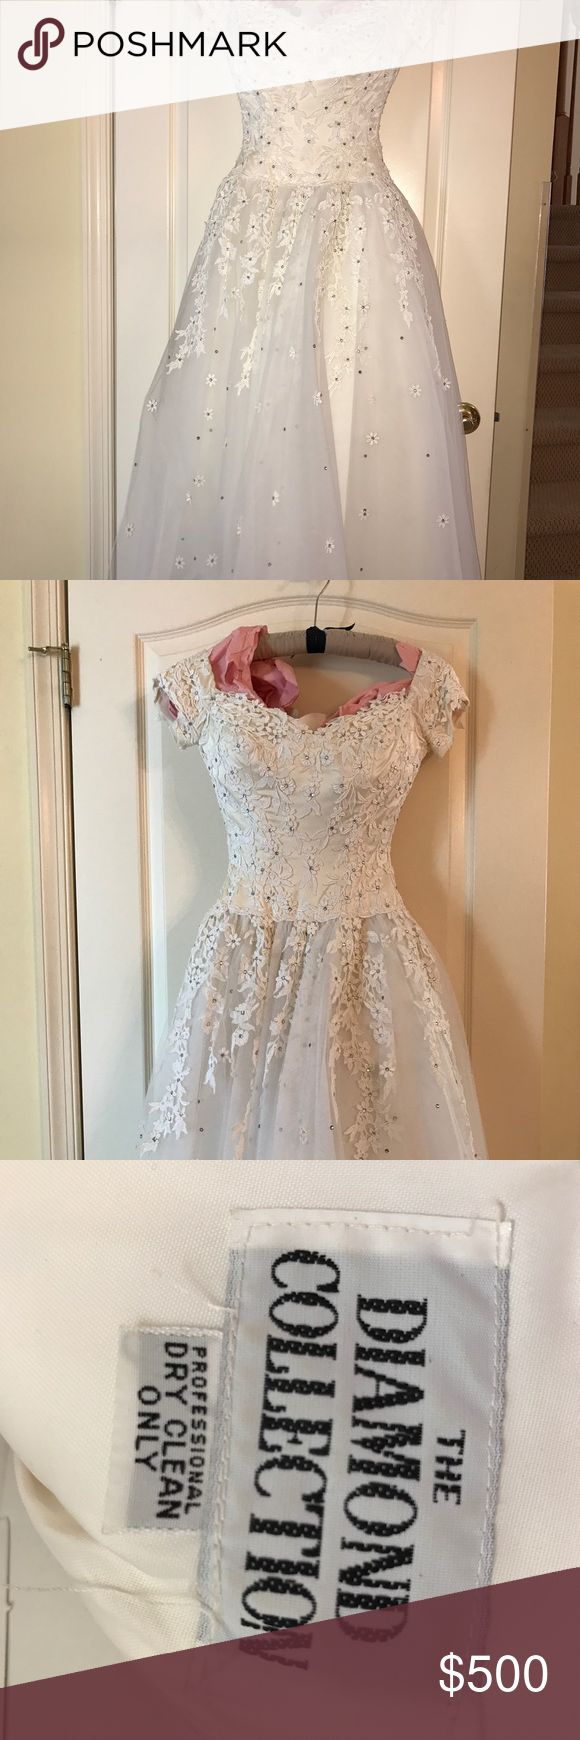 Wedding gown Beautiful white Diamond Collectioon wedding gown. Sweetheart neckline with appliqué daisies and toile bottom. Petite size 0-2 Dresses Wedding